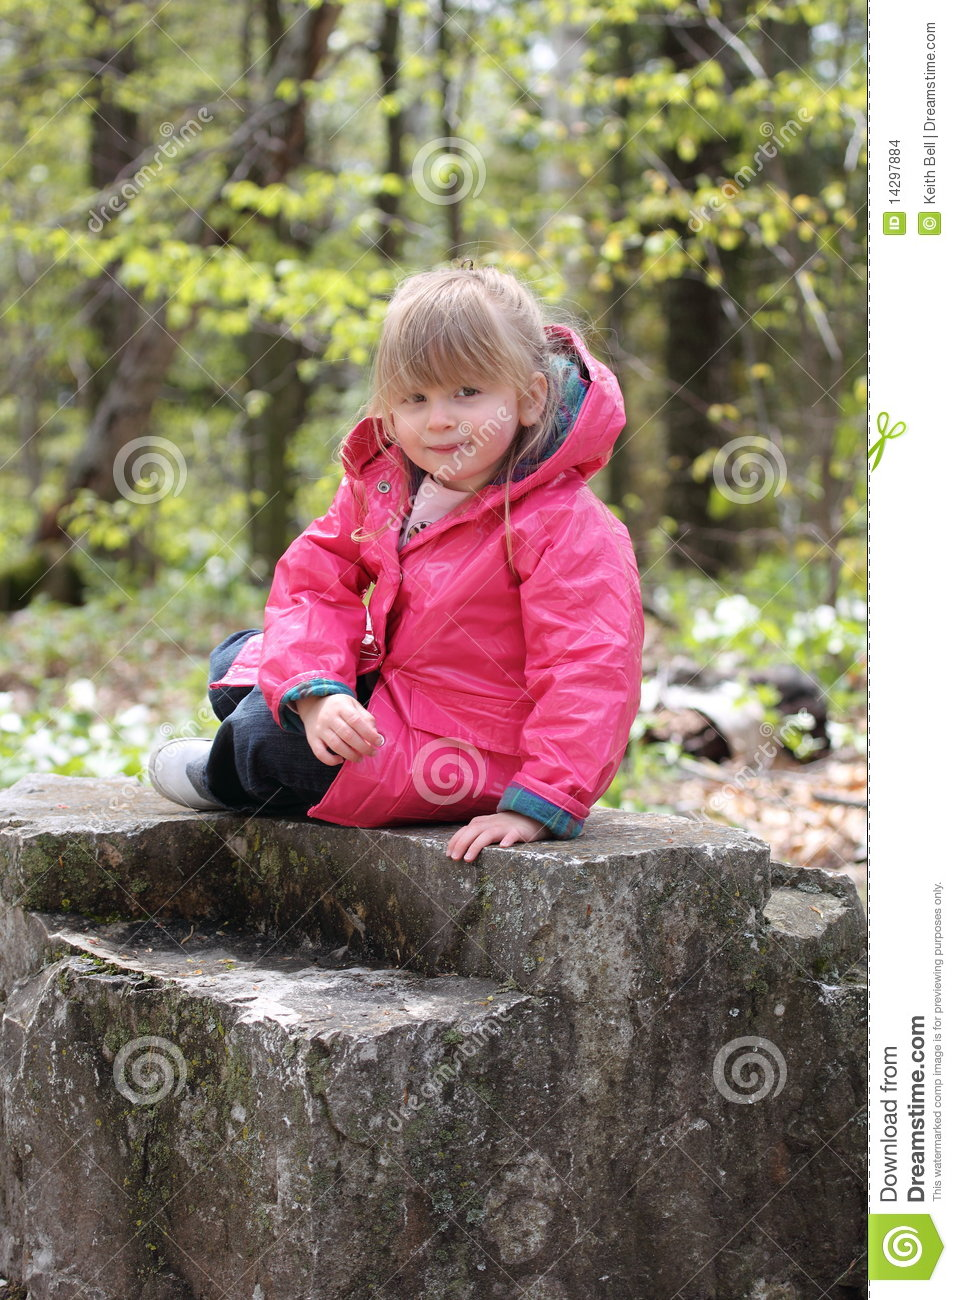 Cute Girl Posing While Reclining on a Rock